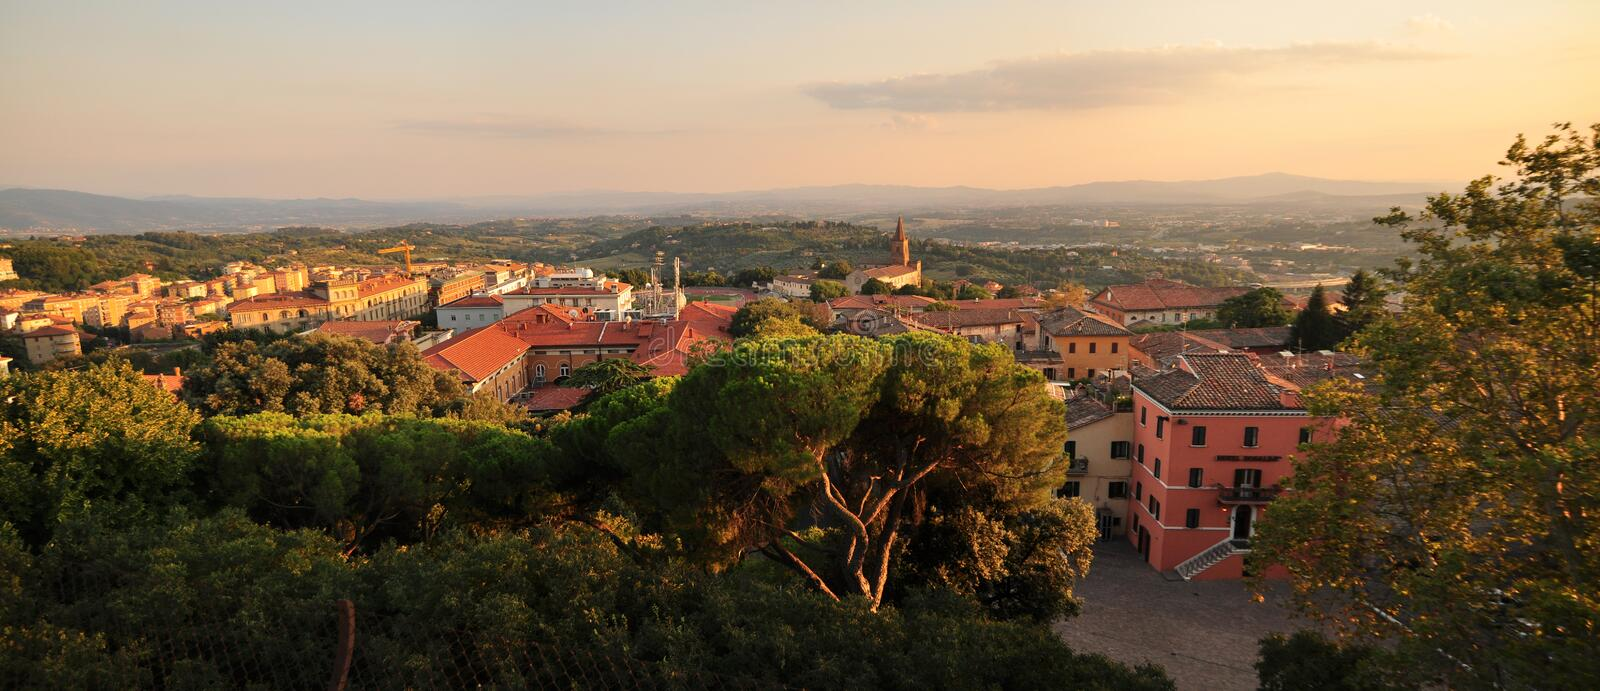 Download Panorama In Perugia - Italy Landscape Stock Image - Image: 16653209